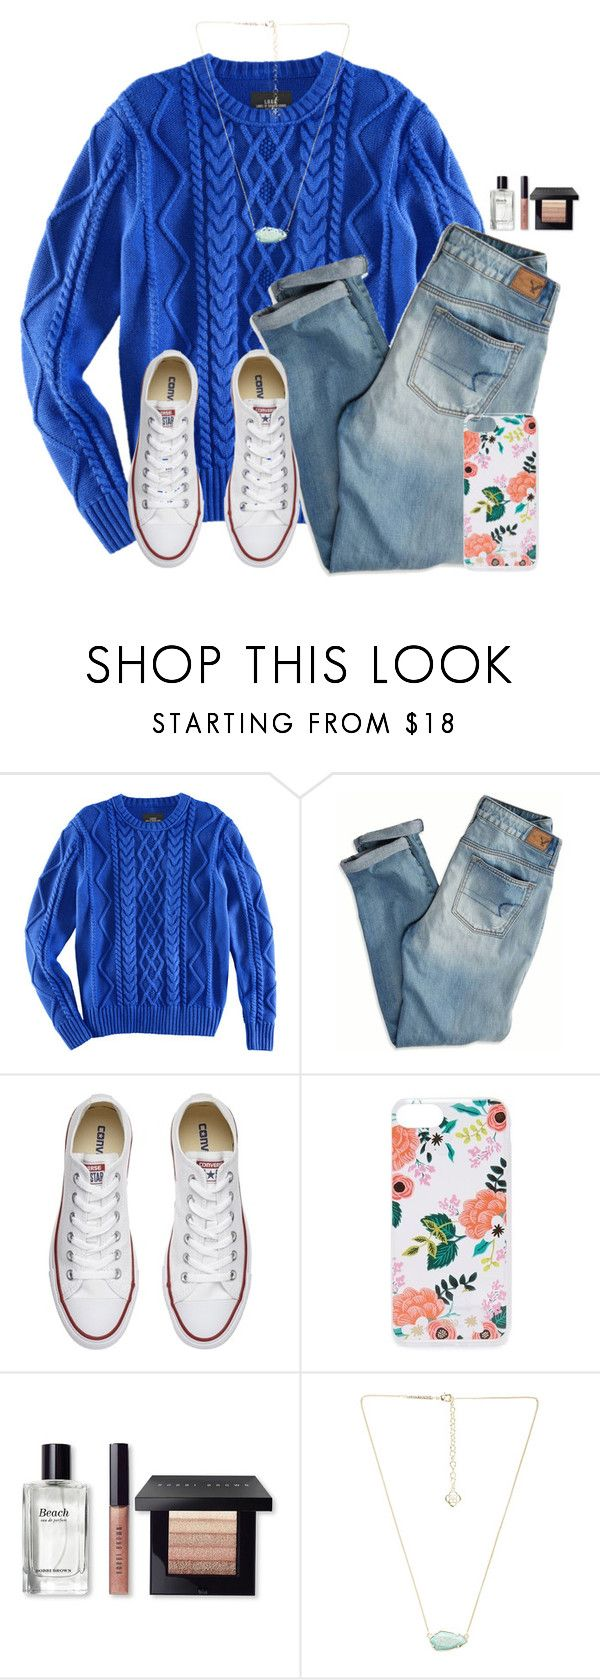 """""""~flowers are blooming~"""" by victoriaann34 ❤ liked on Polyvore featuring H&M, American Eagle Outfitters, Converse, Rifle Paper Co, Bobbi Brown Cosmetics and Kendra Scott"""